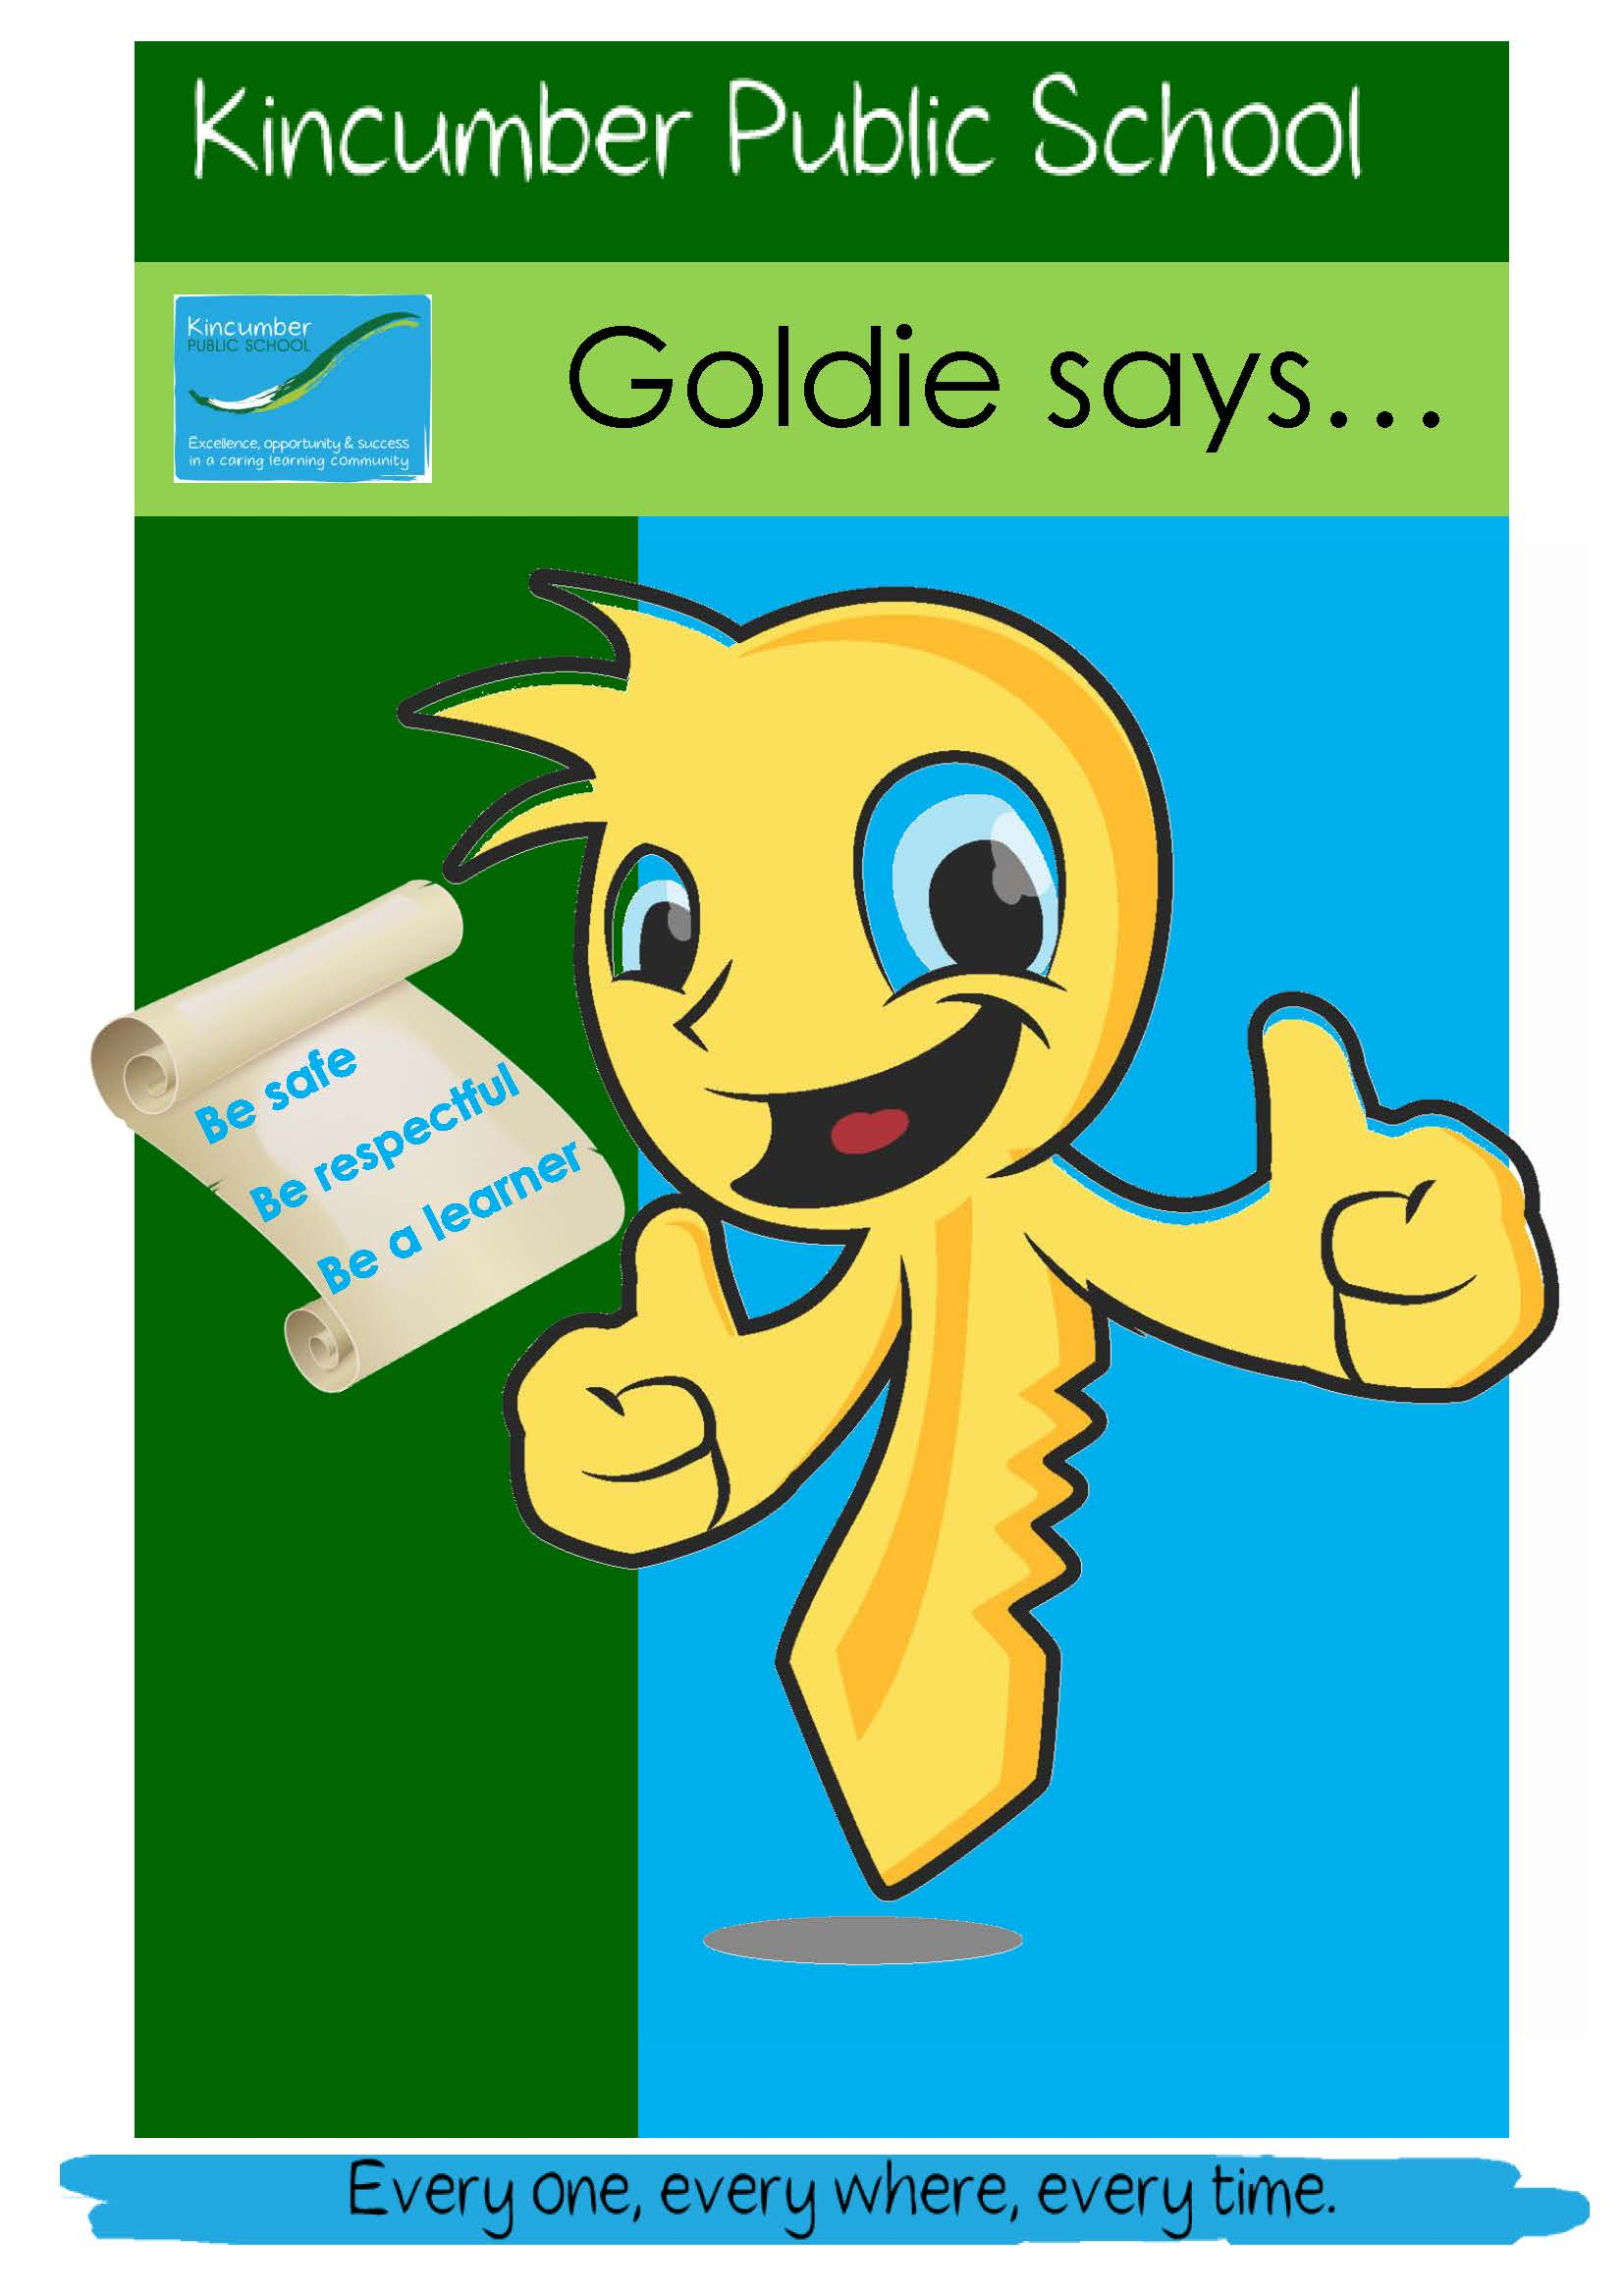 goldie says